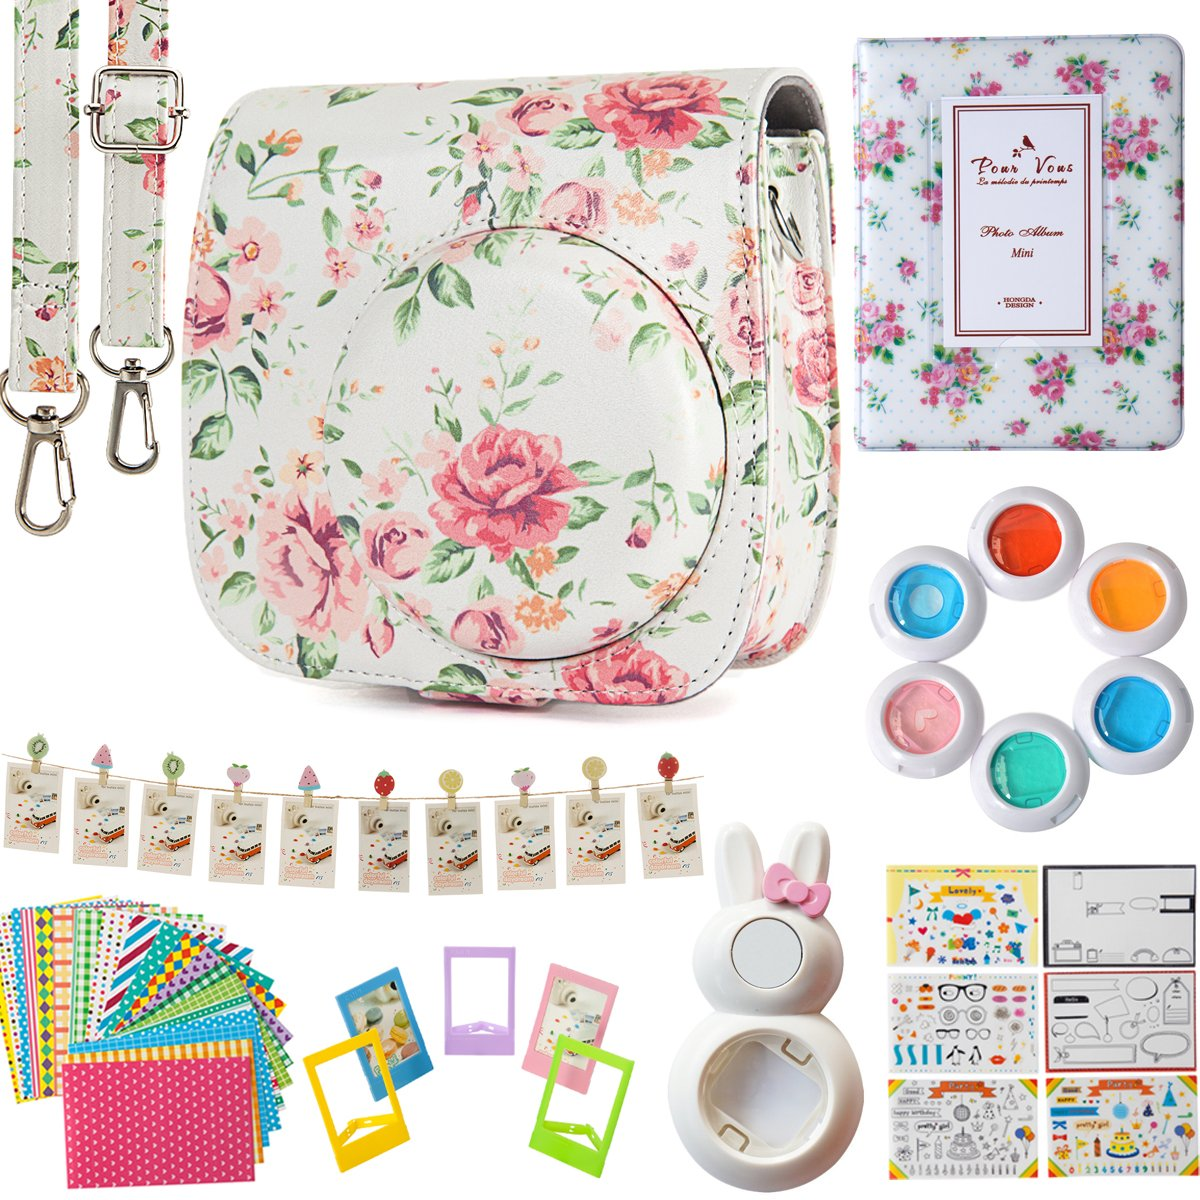 Flylther 8 dans 1 Caméra Accessories Bundle Set pour Fujifilm Instax Mini 8 8+ 9 Appareil Photo - Fleur blanche(Housse/Album/Lentille Selfie/6 Couleurs Lens/Photo Pendre/Coloré Cadres Film/Stickers Film/Autocollants de Films DIY)